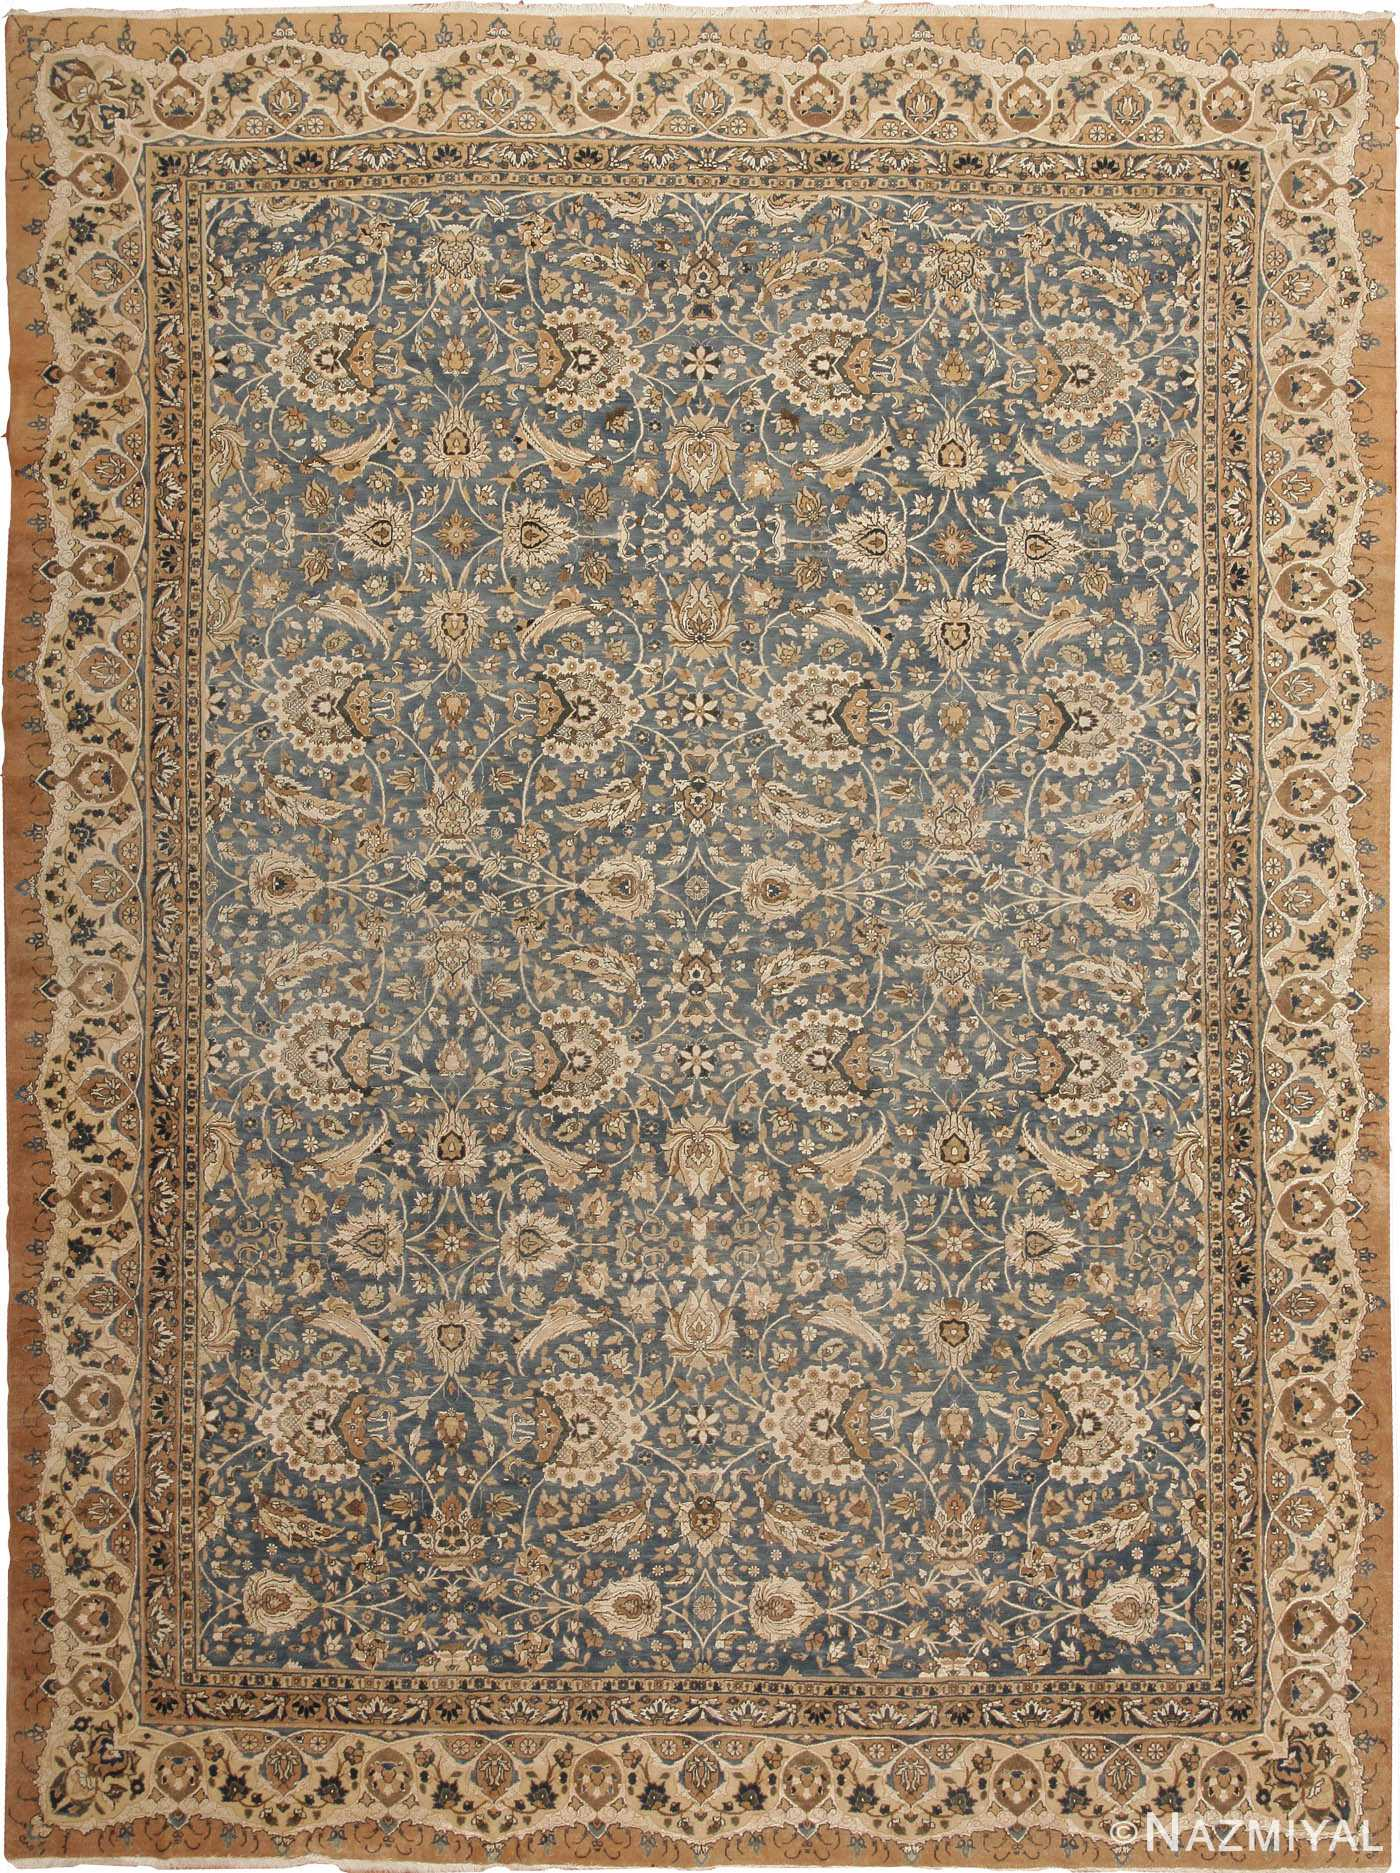 Antique Tehran Silk and Wool Persian Rug 44109